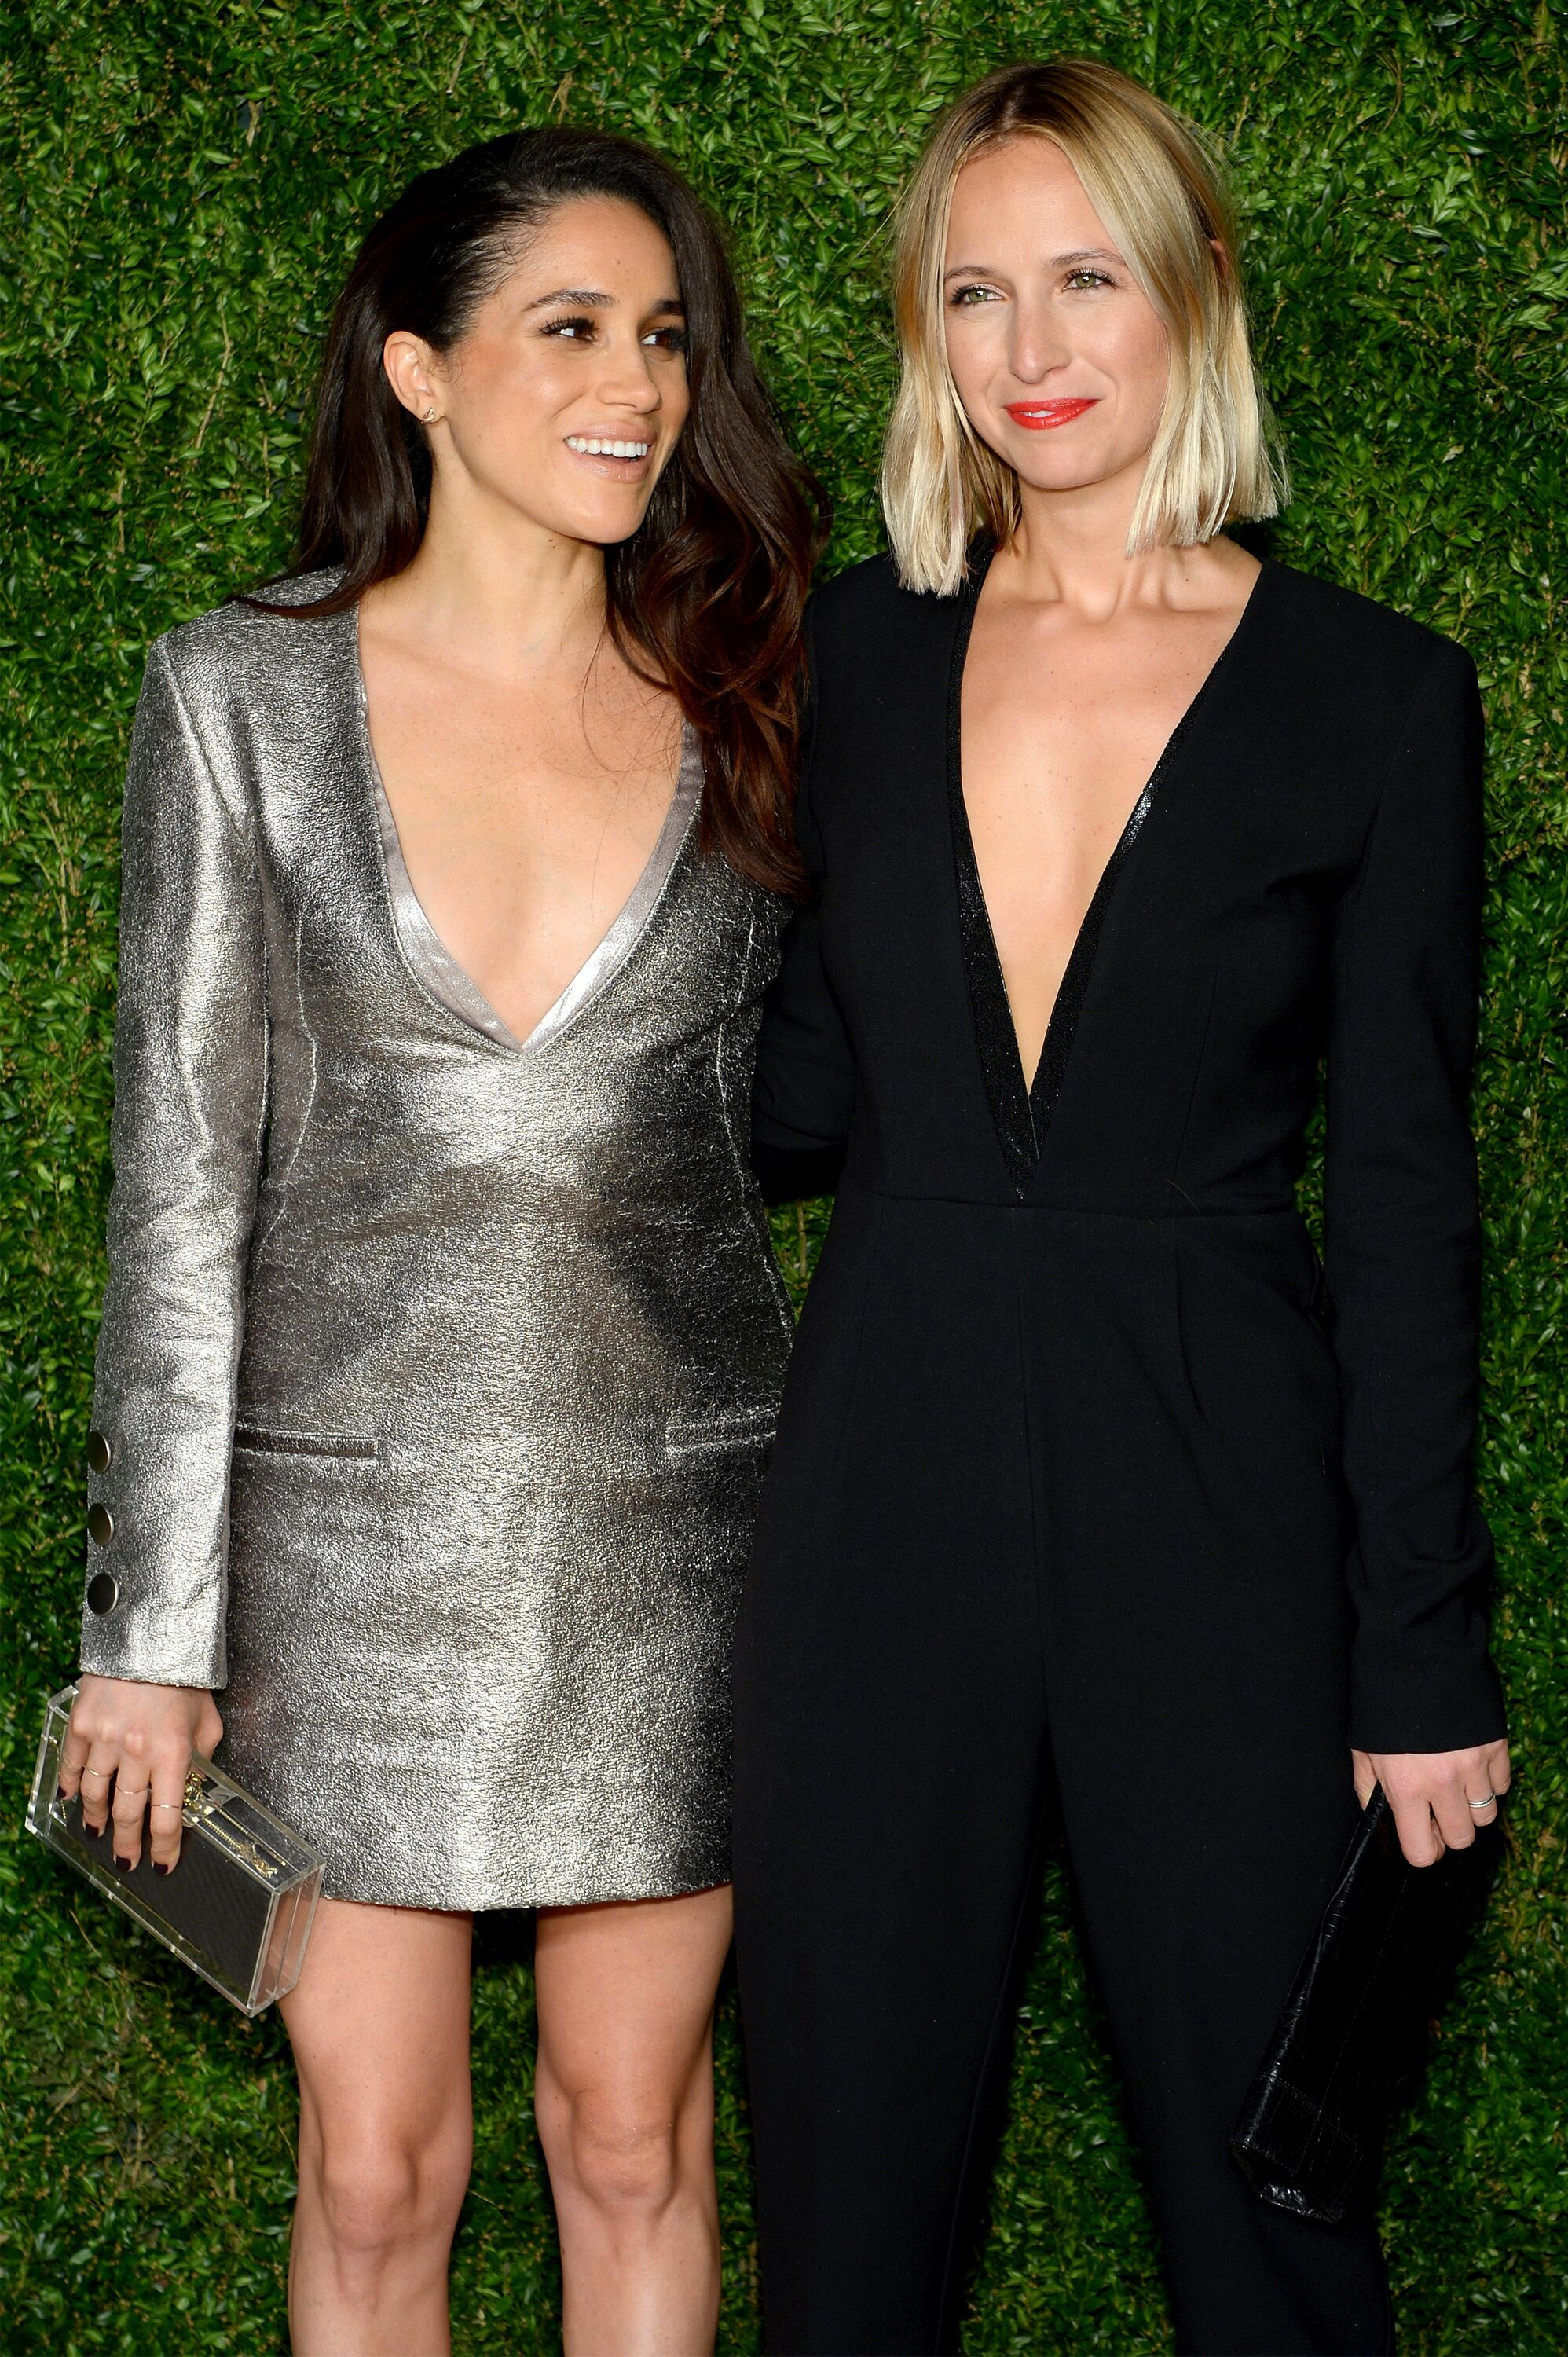 Meghan Markle (L) and Misha Nonoo attend the 12th annual CFDA/Vogue Fashion Fund Awards at Spring Studios on November 2, 2015 in New York City | Photo: Getty Images